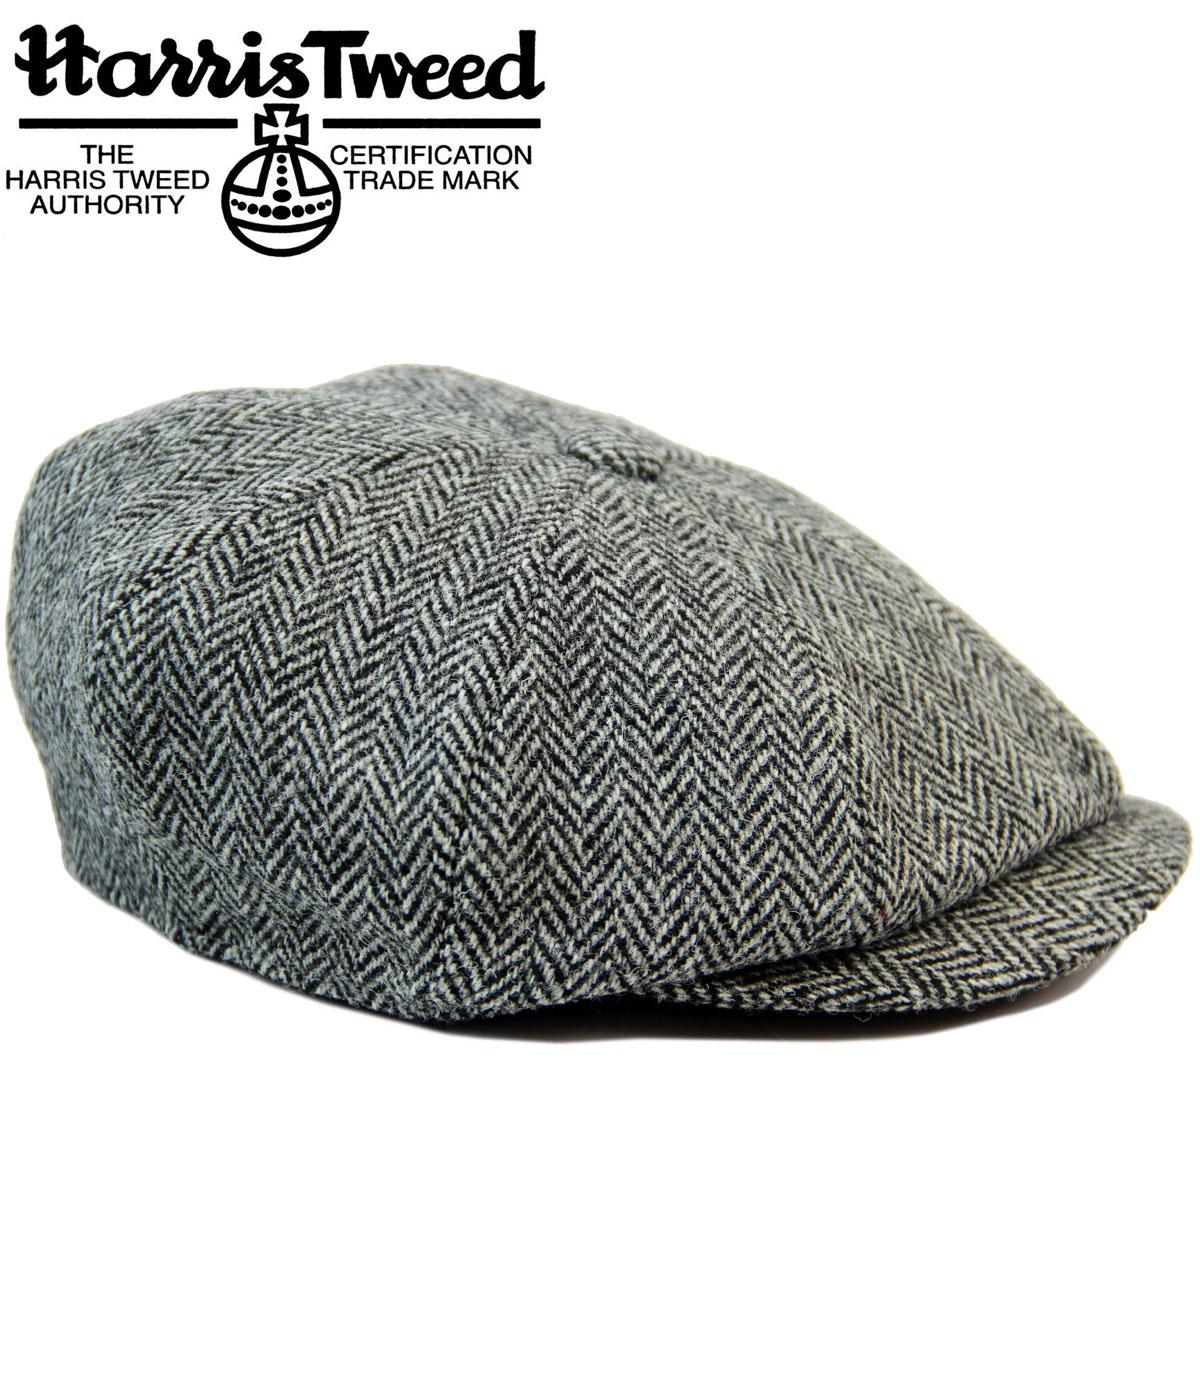 4f8fab896ac85f Carloway FAILSWORTH Harris Tweed Retro Gatsby Cap in Black